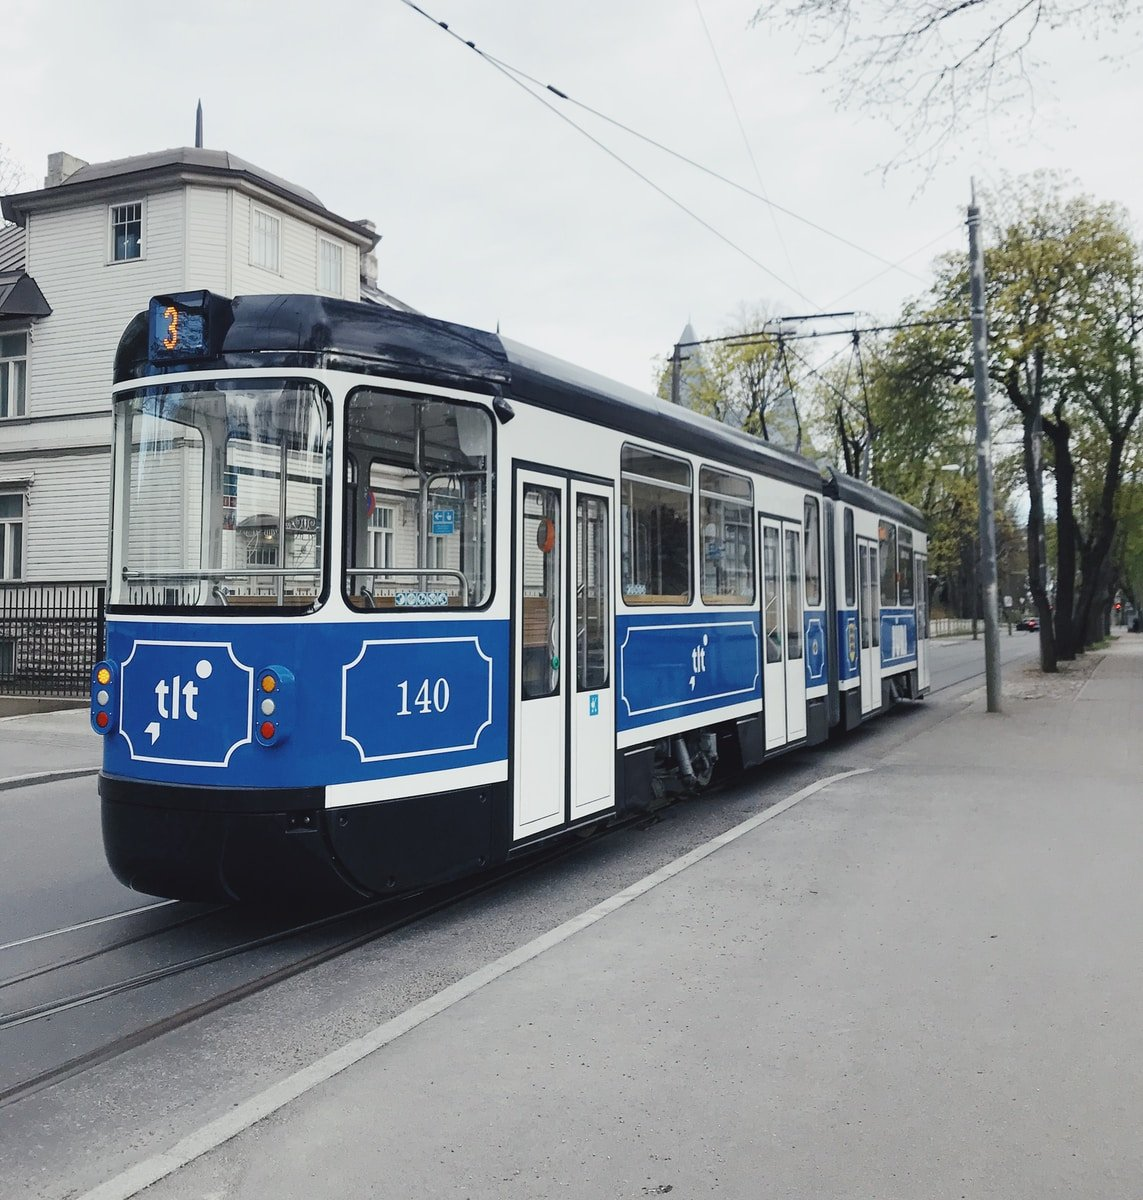 white and blue train on rail road during daytime